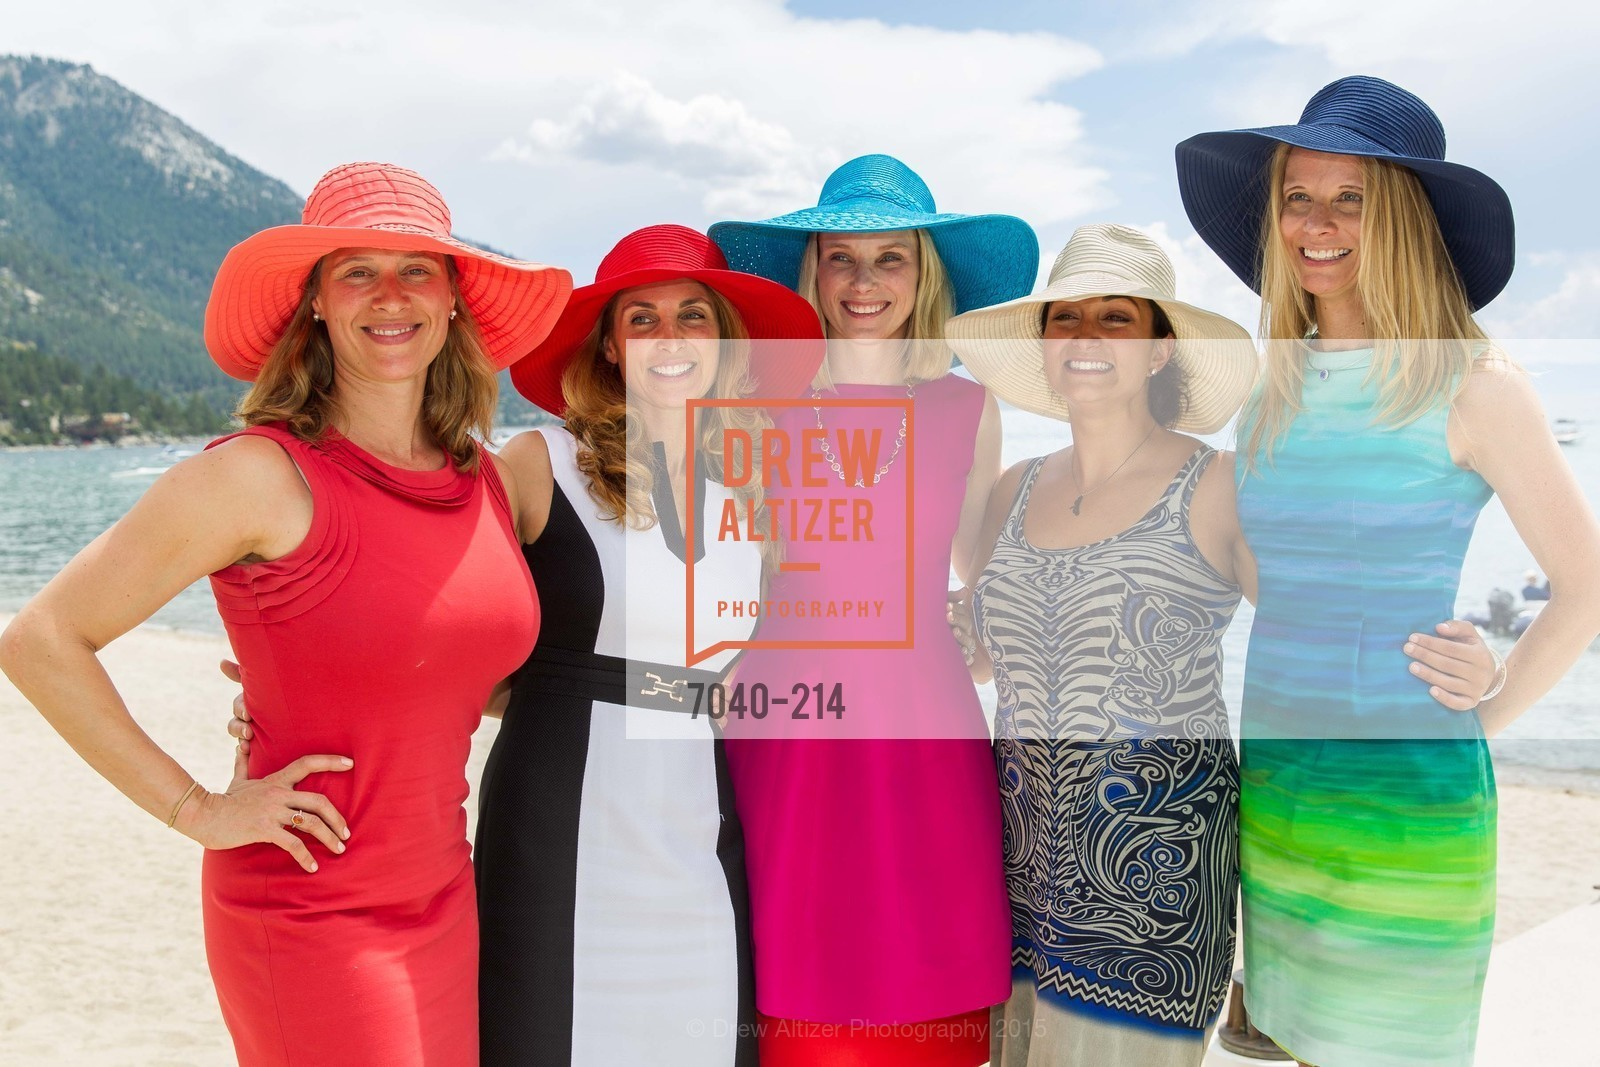 Heather Henri, Alyssa Rapp, Marissa Mayer, Shirin Oskooi, Jamie Cross, Saks Fifth Avenue and The League to Save Lake Tahoe Present Fashion on the Lake, Private Residence, August 1st, 2015,Drew Altizer, Drew Altizer Photography, full-service agency, private events, San Francisco photographer, photographer california